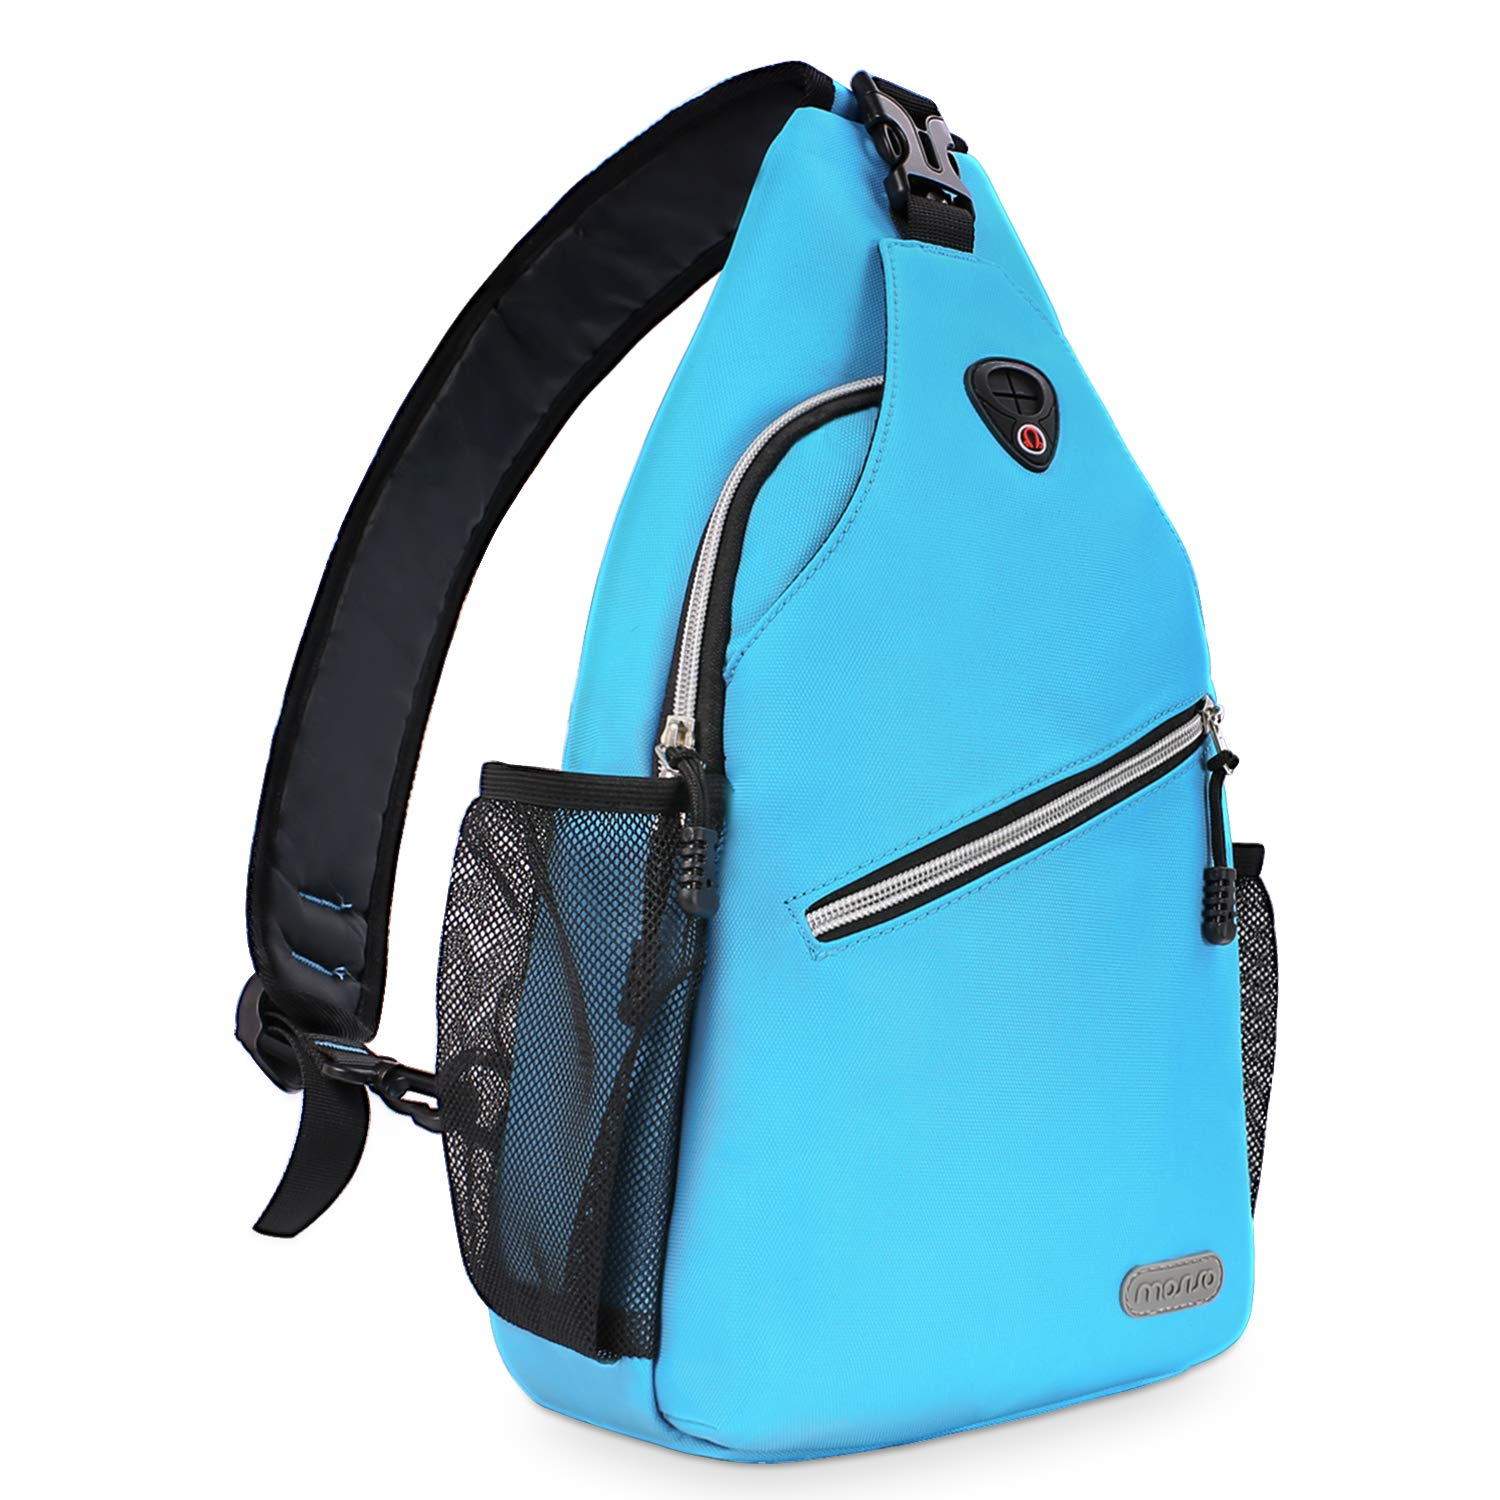 MOSISO Sling Backpack, Multipurpose Crossbody Shoulder Bag Travel Hiking Daypack Bird